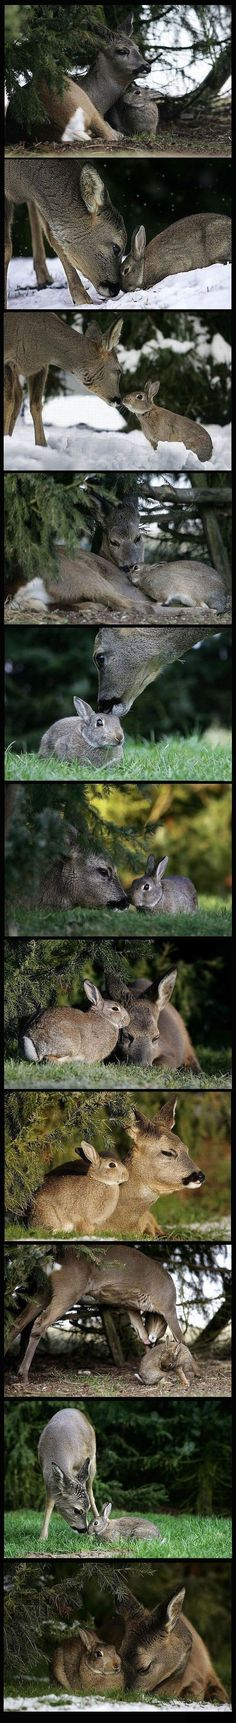 Love when 2 totally different species come together and find comfort in each other.  We could learn a lot from animals.